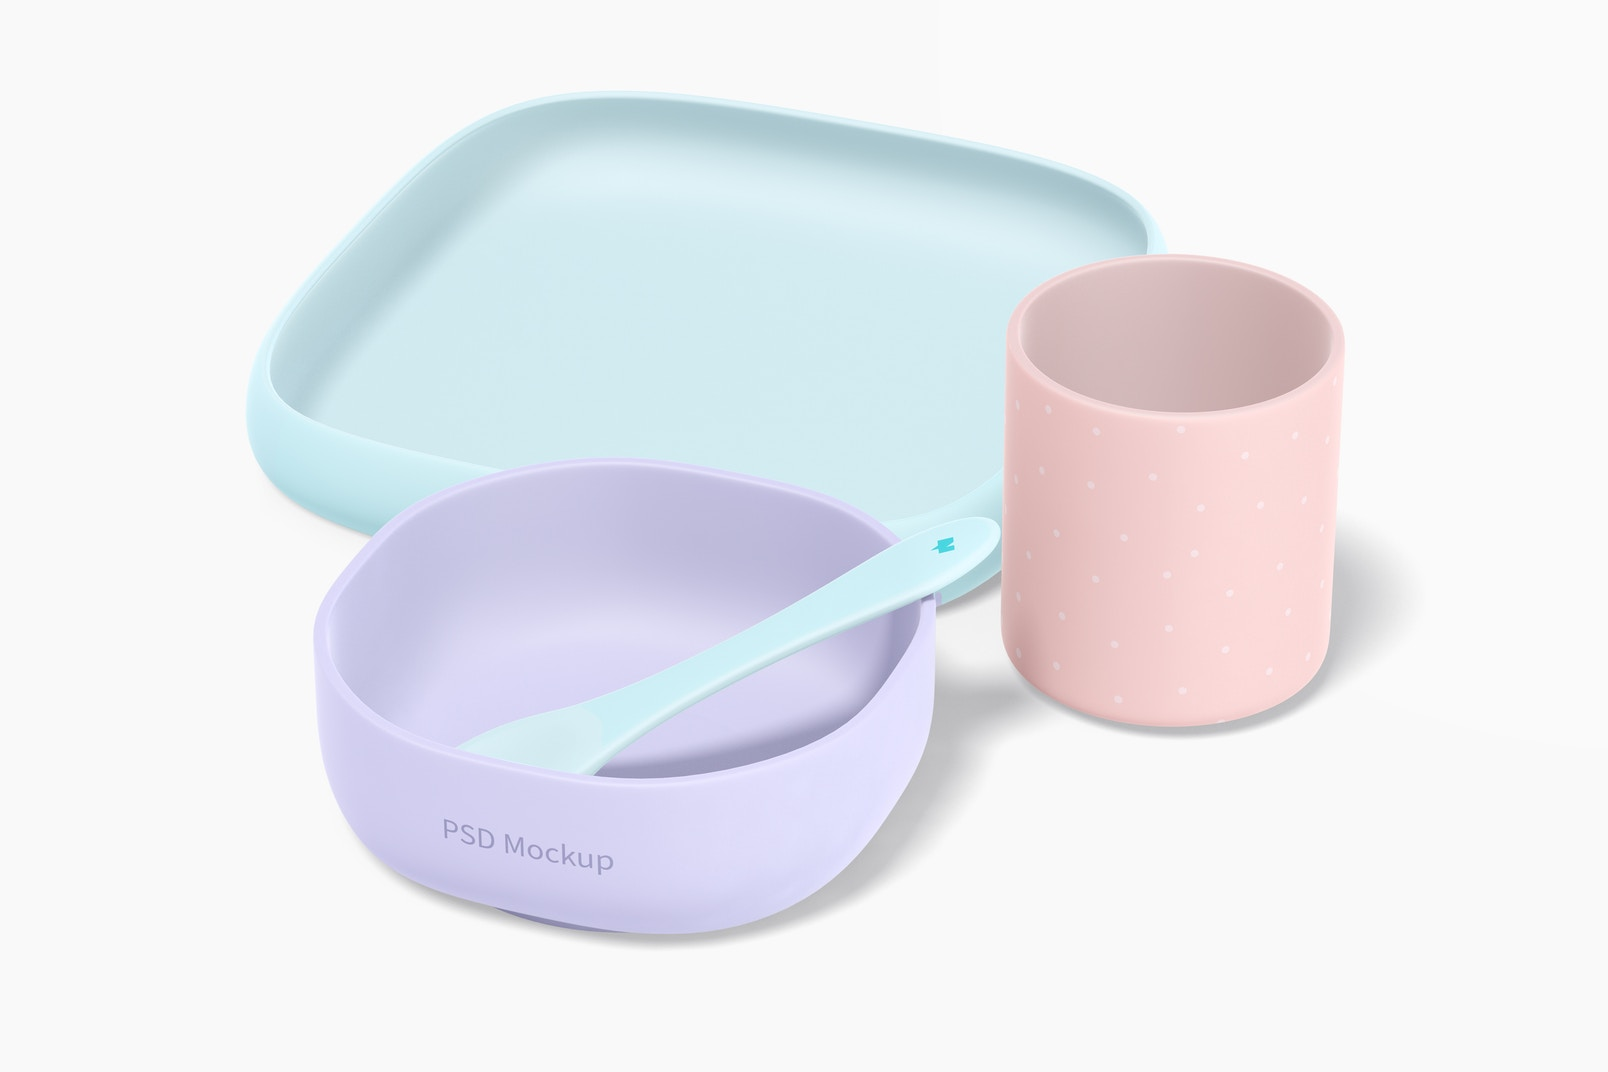 Baby Silicone Crockery Kit Mockup, Right View